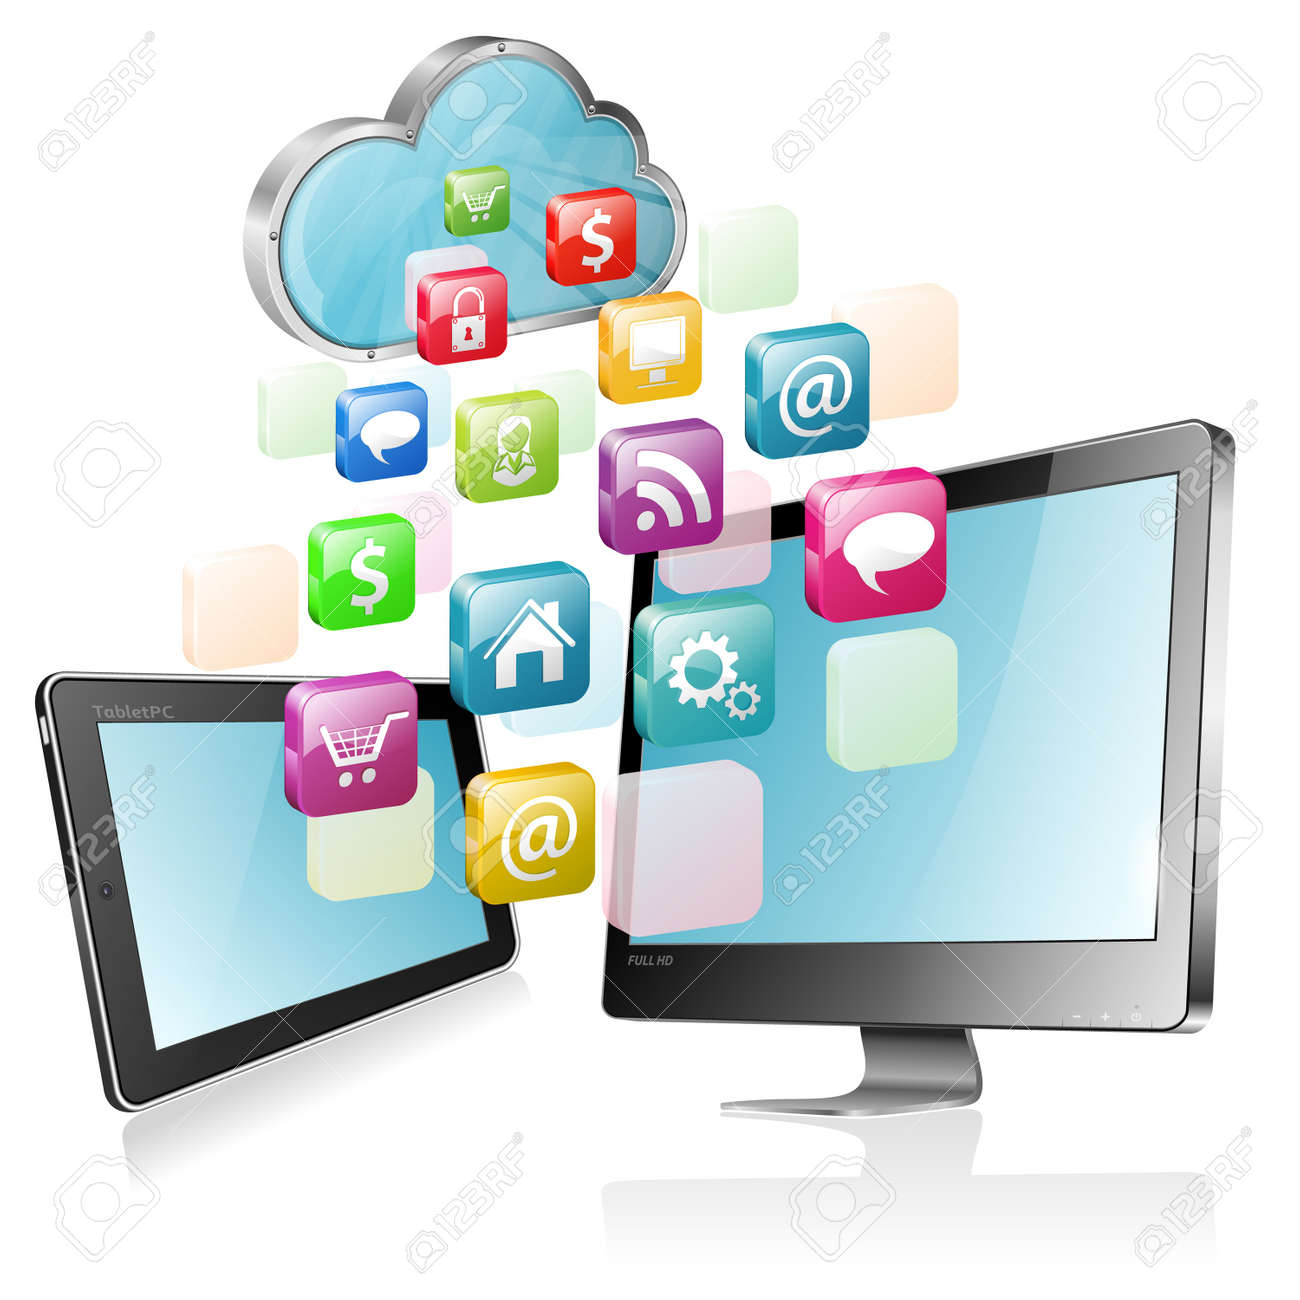 Cloud Computing Concept - Cloud with Tablet PC, Full HD Monitor